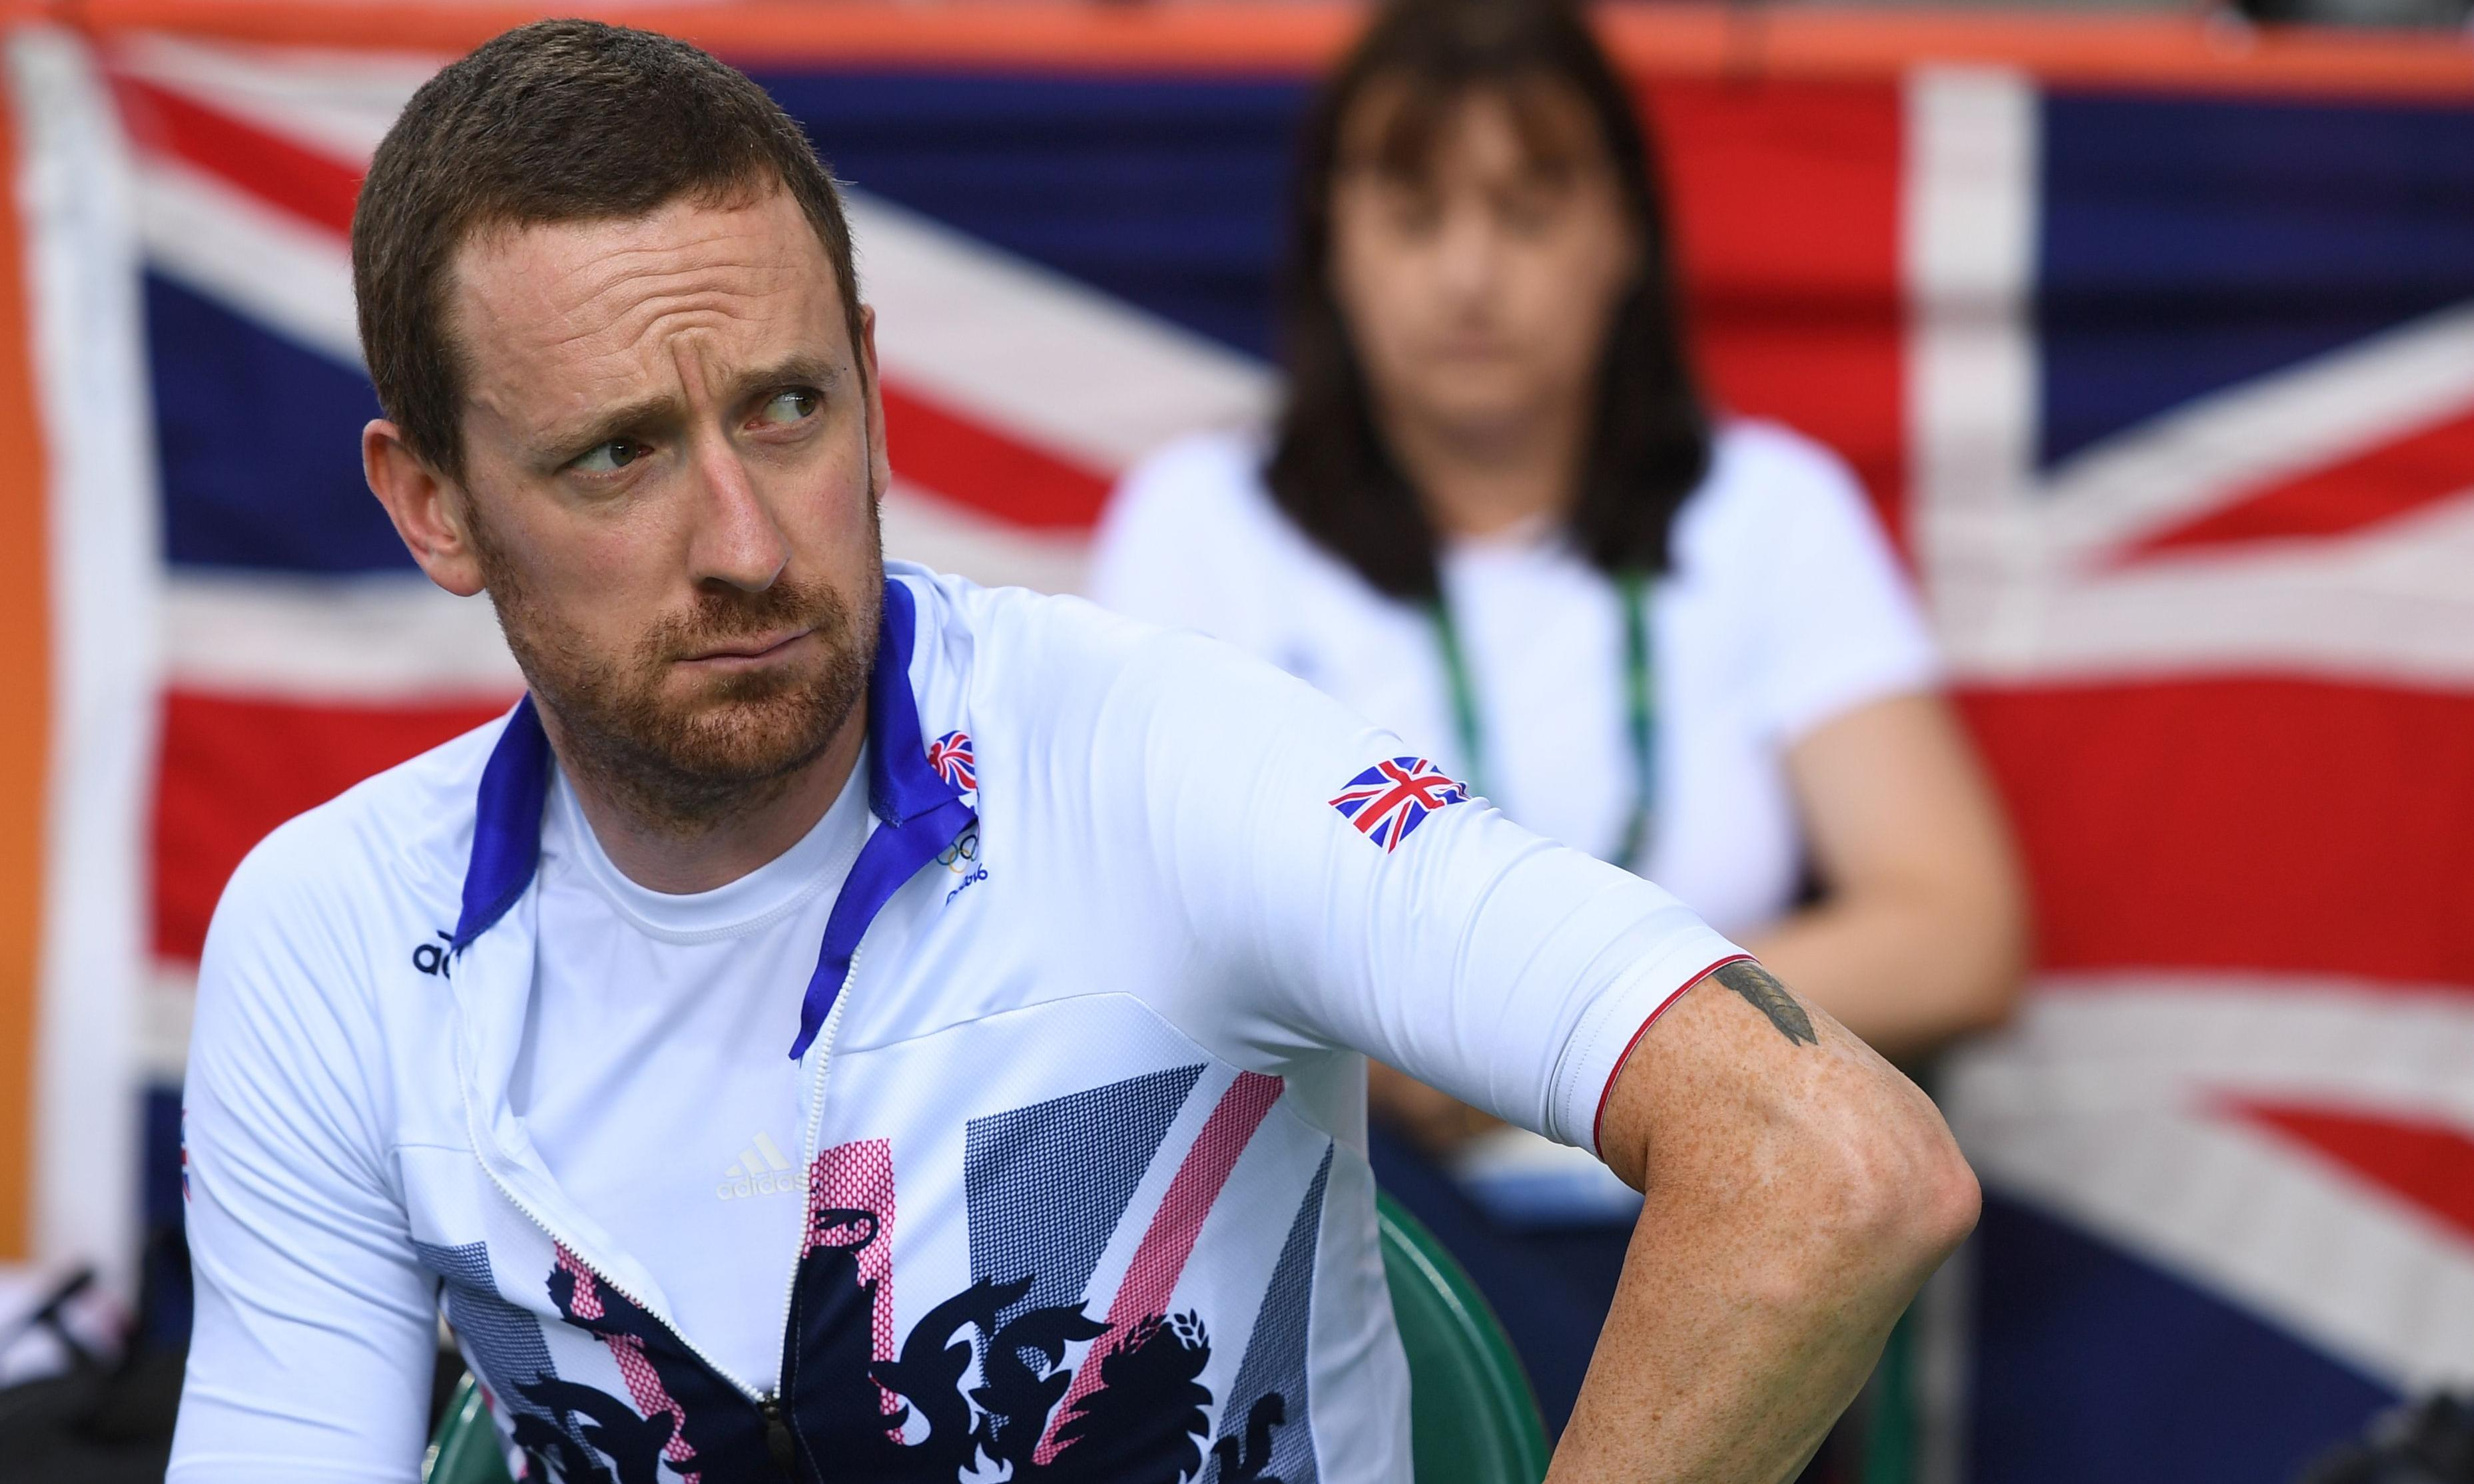 Bradley Wiggins' former doctor questions use of banned steroid